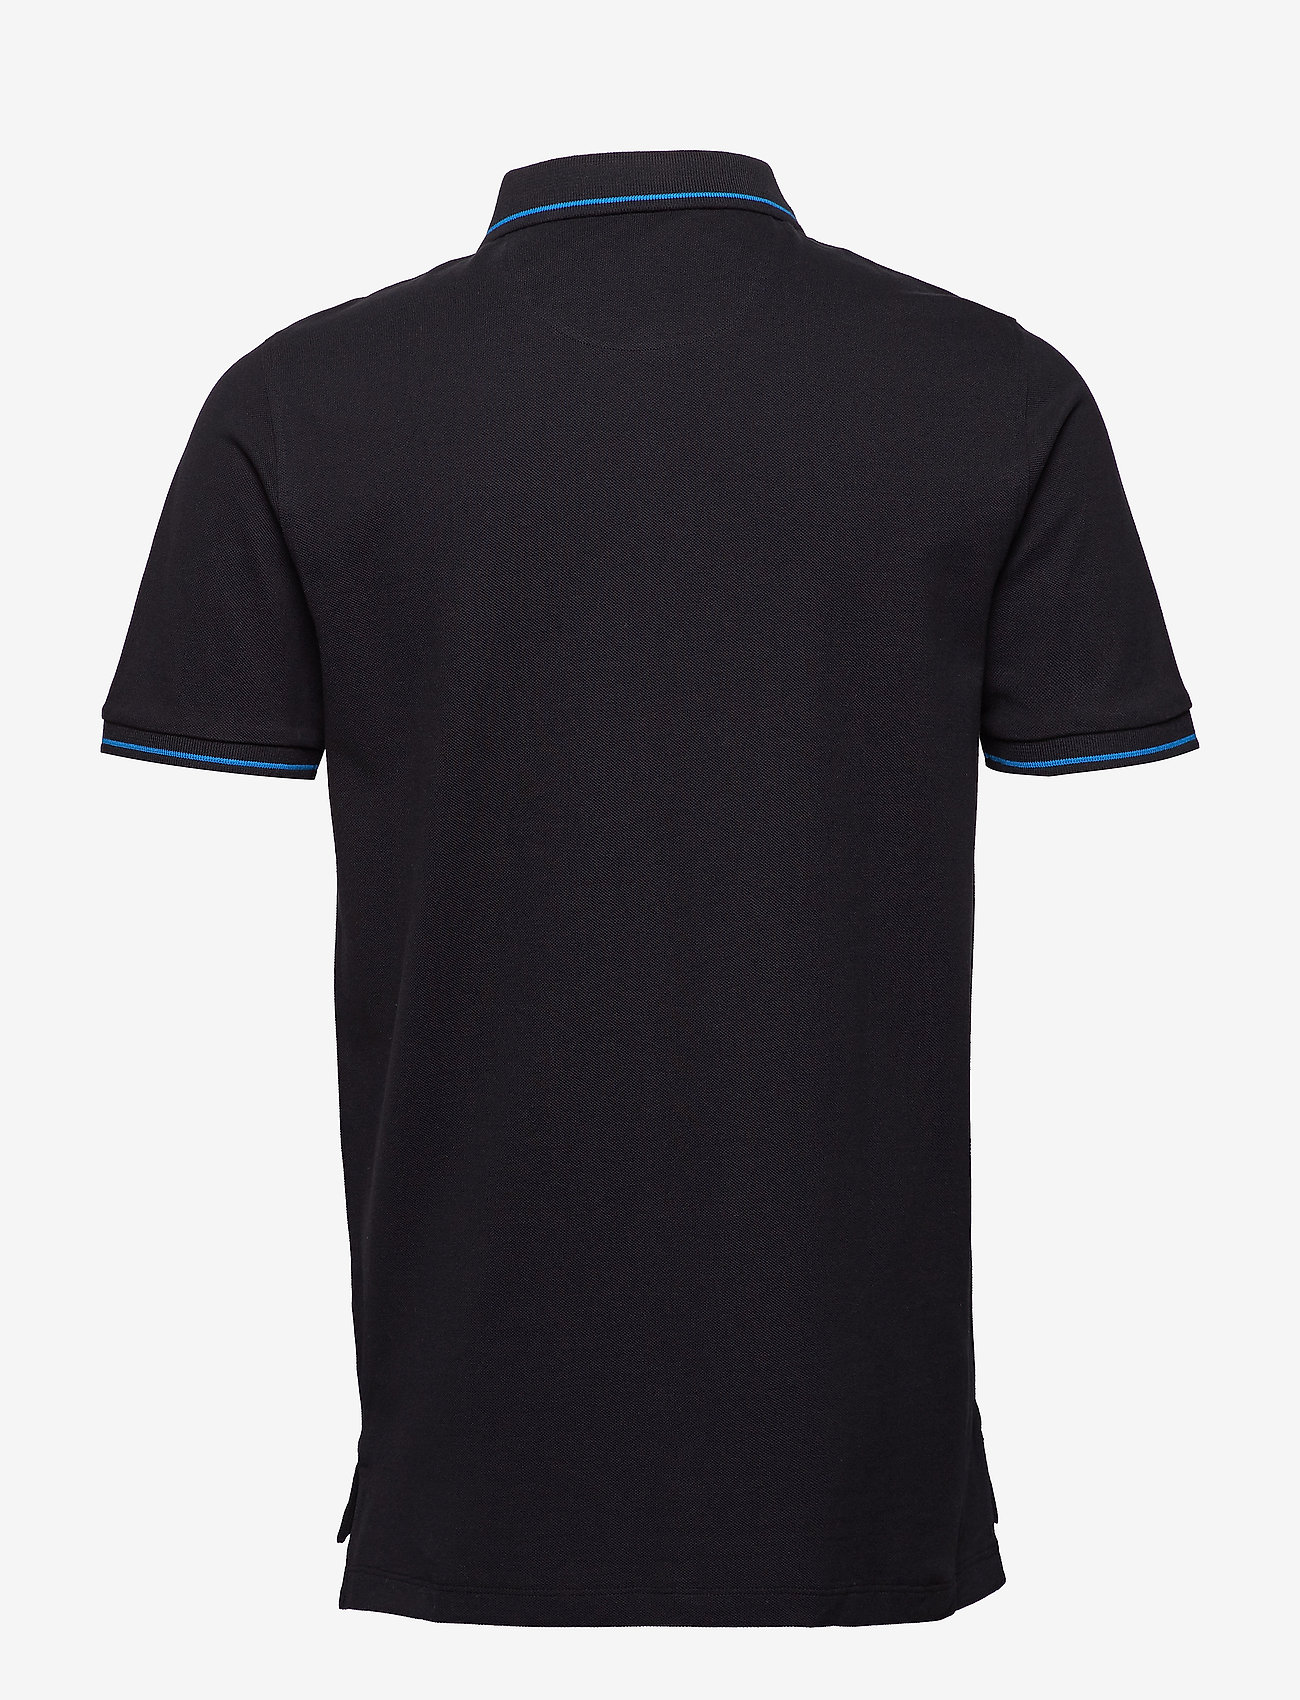 Lee Jeans - PIQUE POLO - short-sleeved polos - black - 1